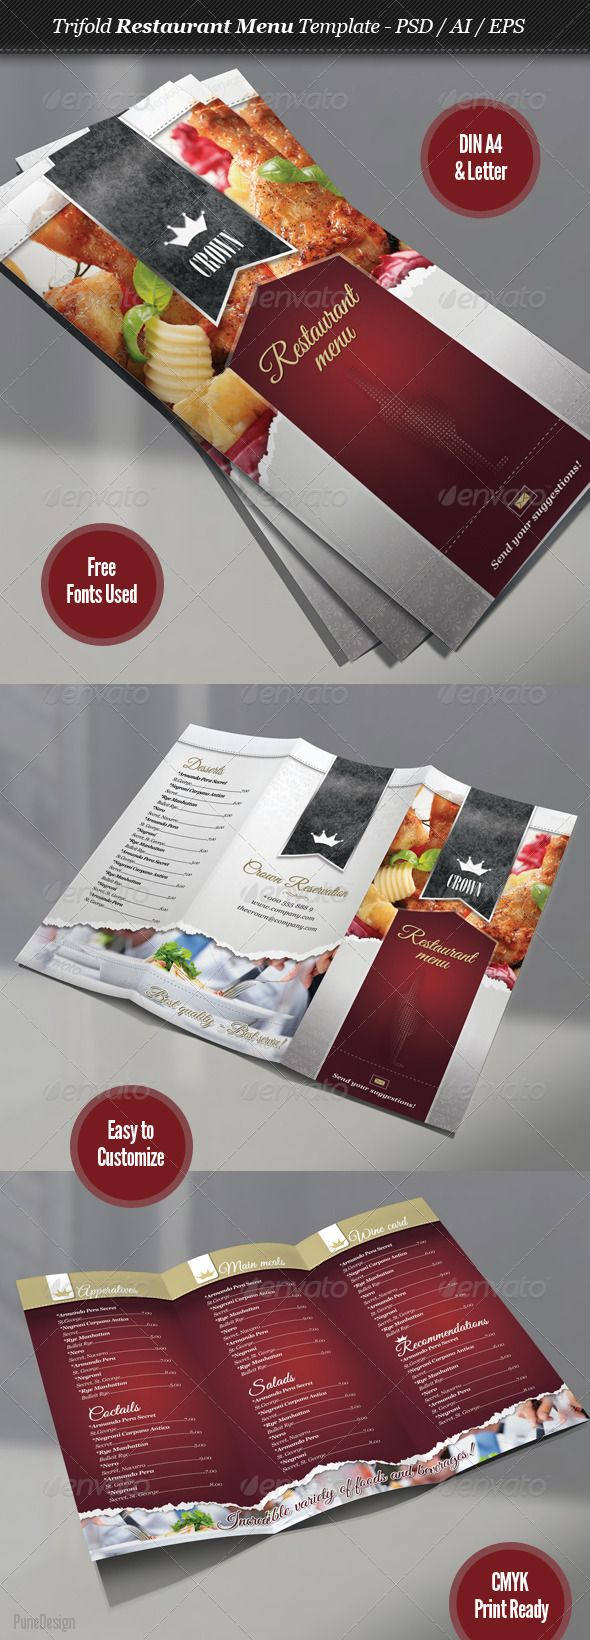 Trifold Restaurant Menu Template - GraphicRiver Item for Sale